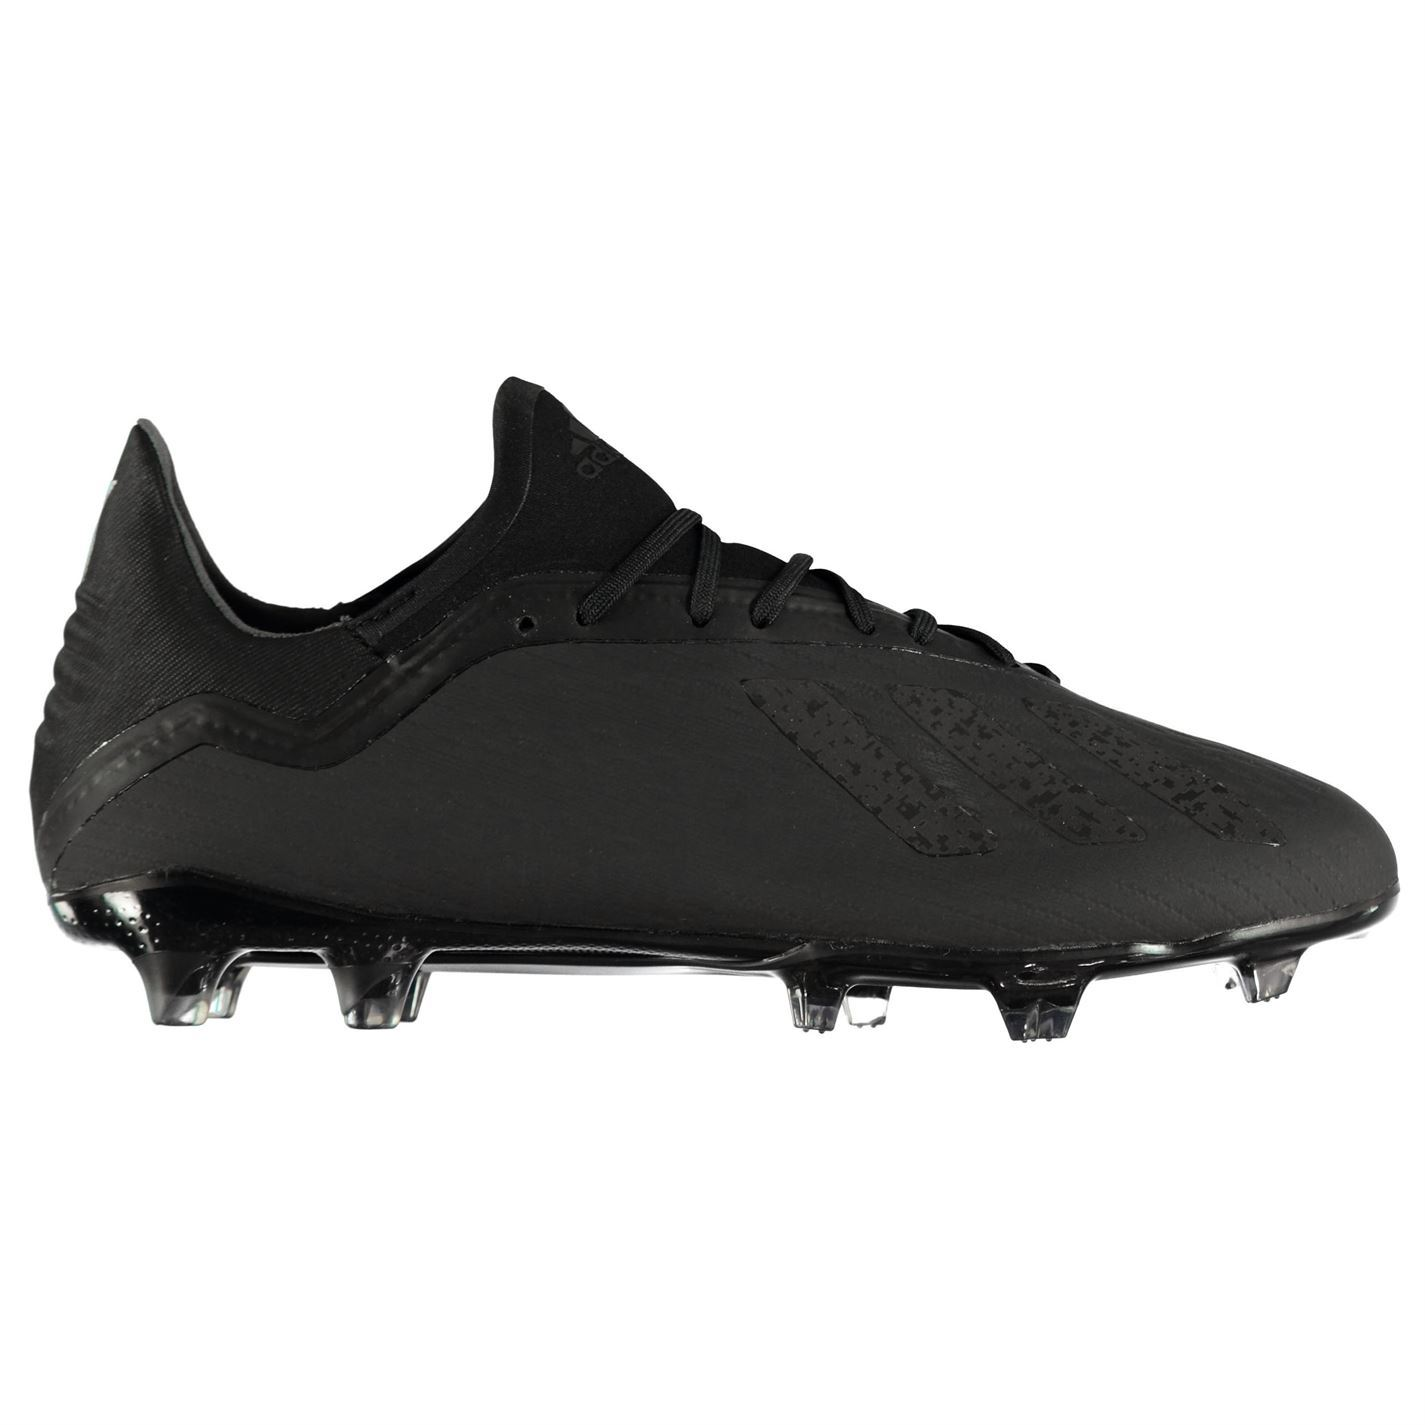 ... adidas X 18.2 FG Firm Ground Football Boots Mens Black Soccer Shoes  Cleats ... a4e256727